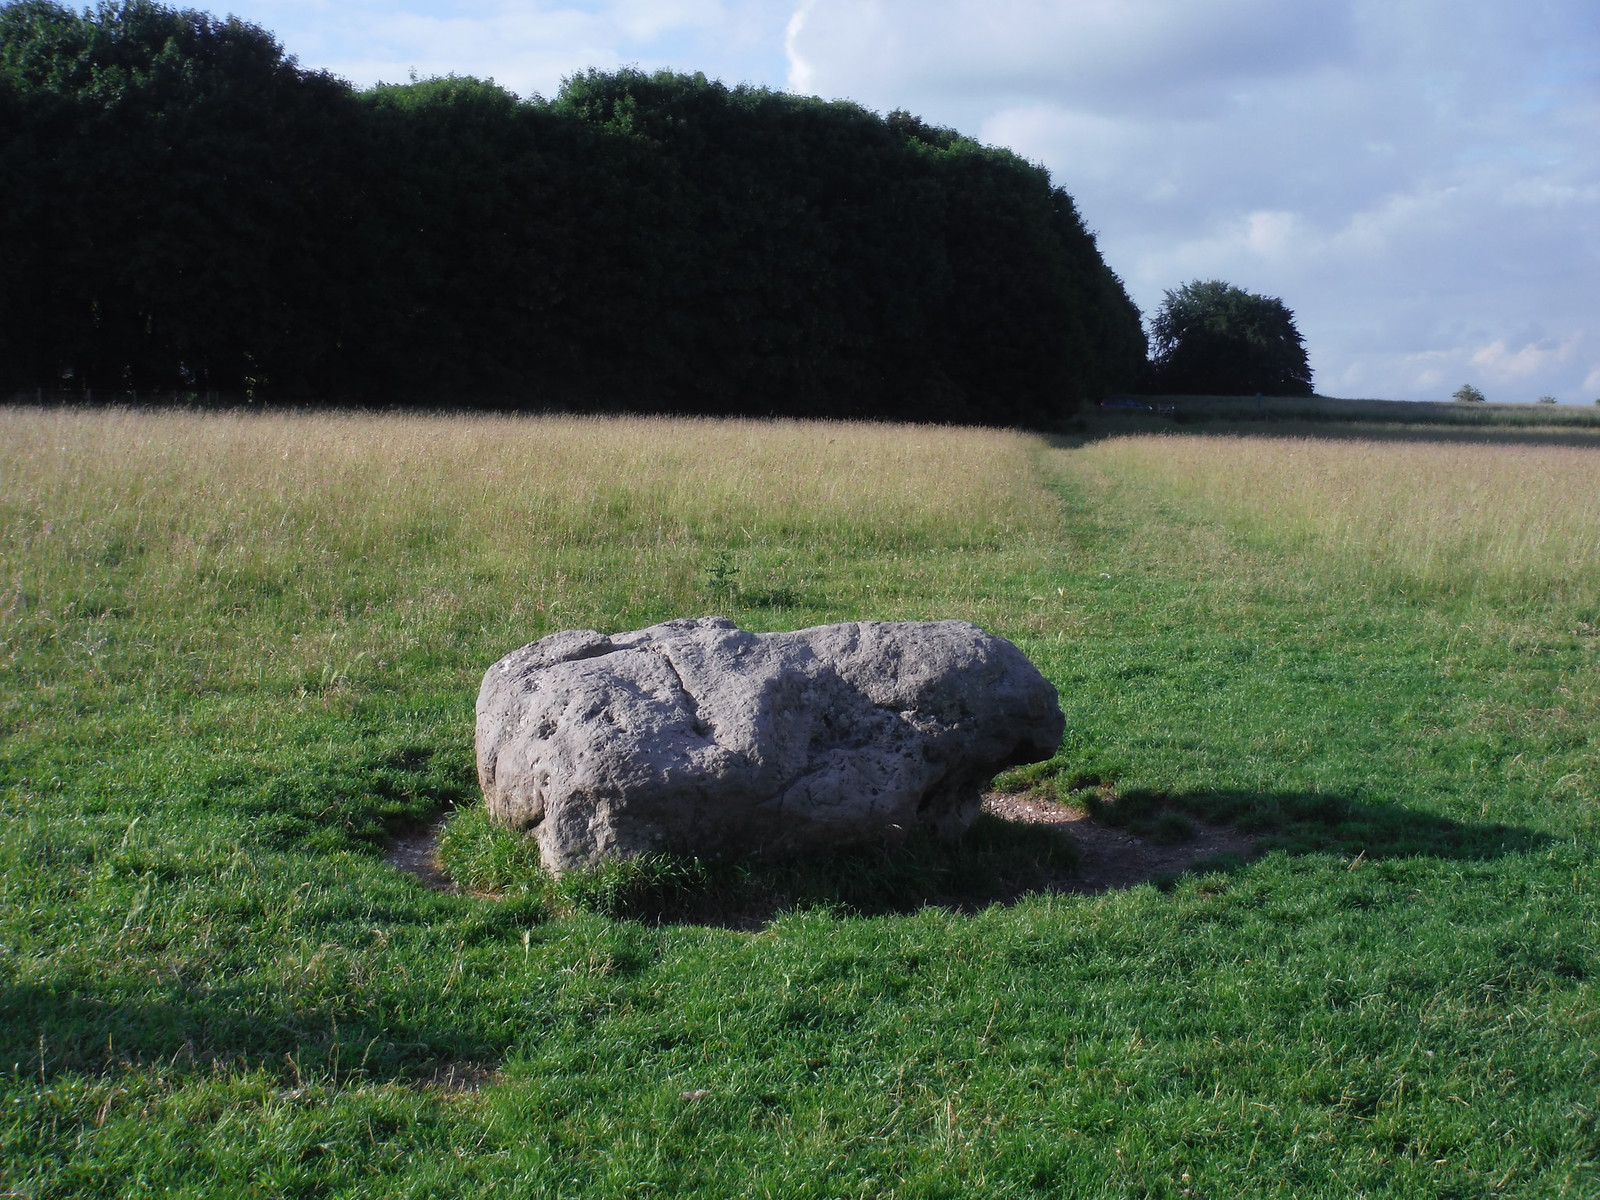 Cuckoo Stone, Durrington Walls SWC 67 Salisbury to Amesbury (via Stonehenge) Extension to Woodhenge and Durrington Walls